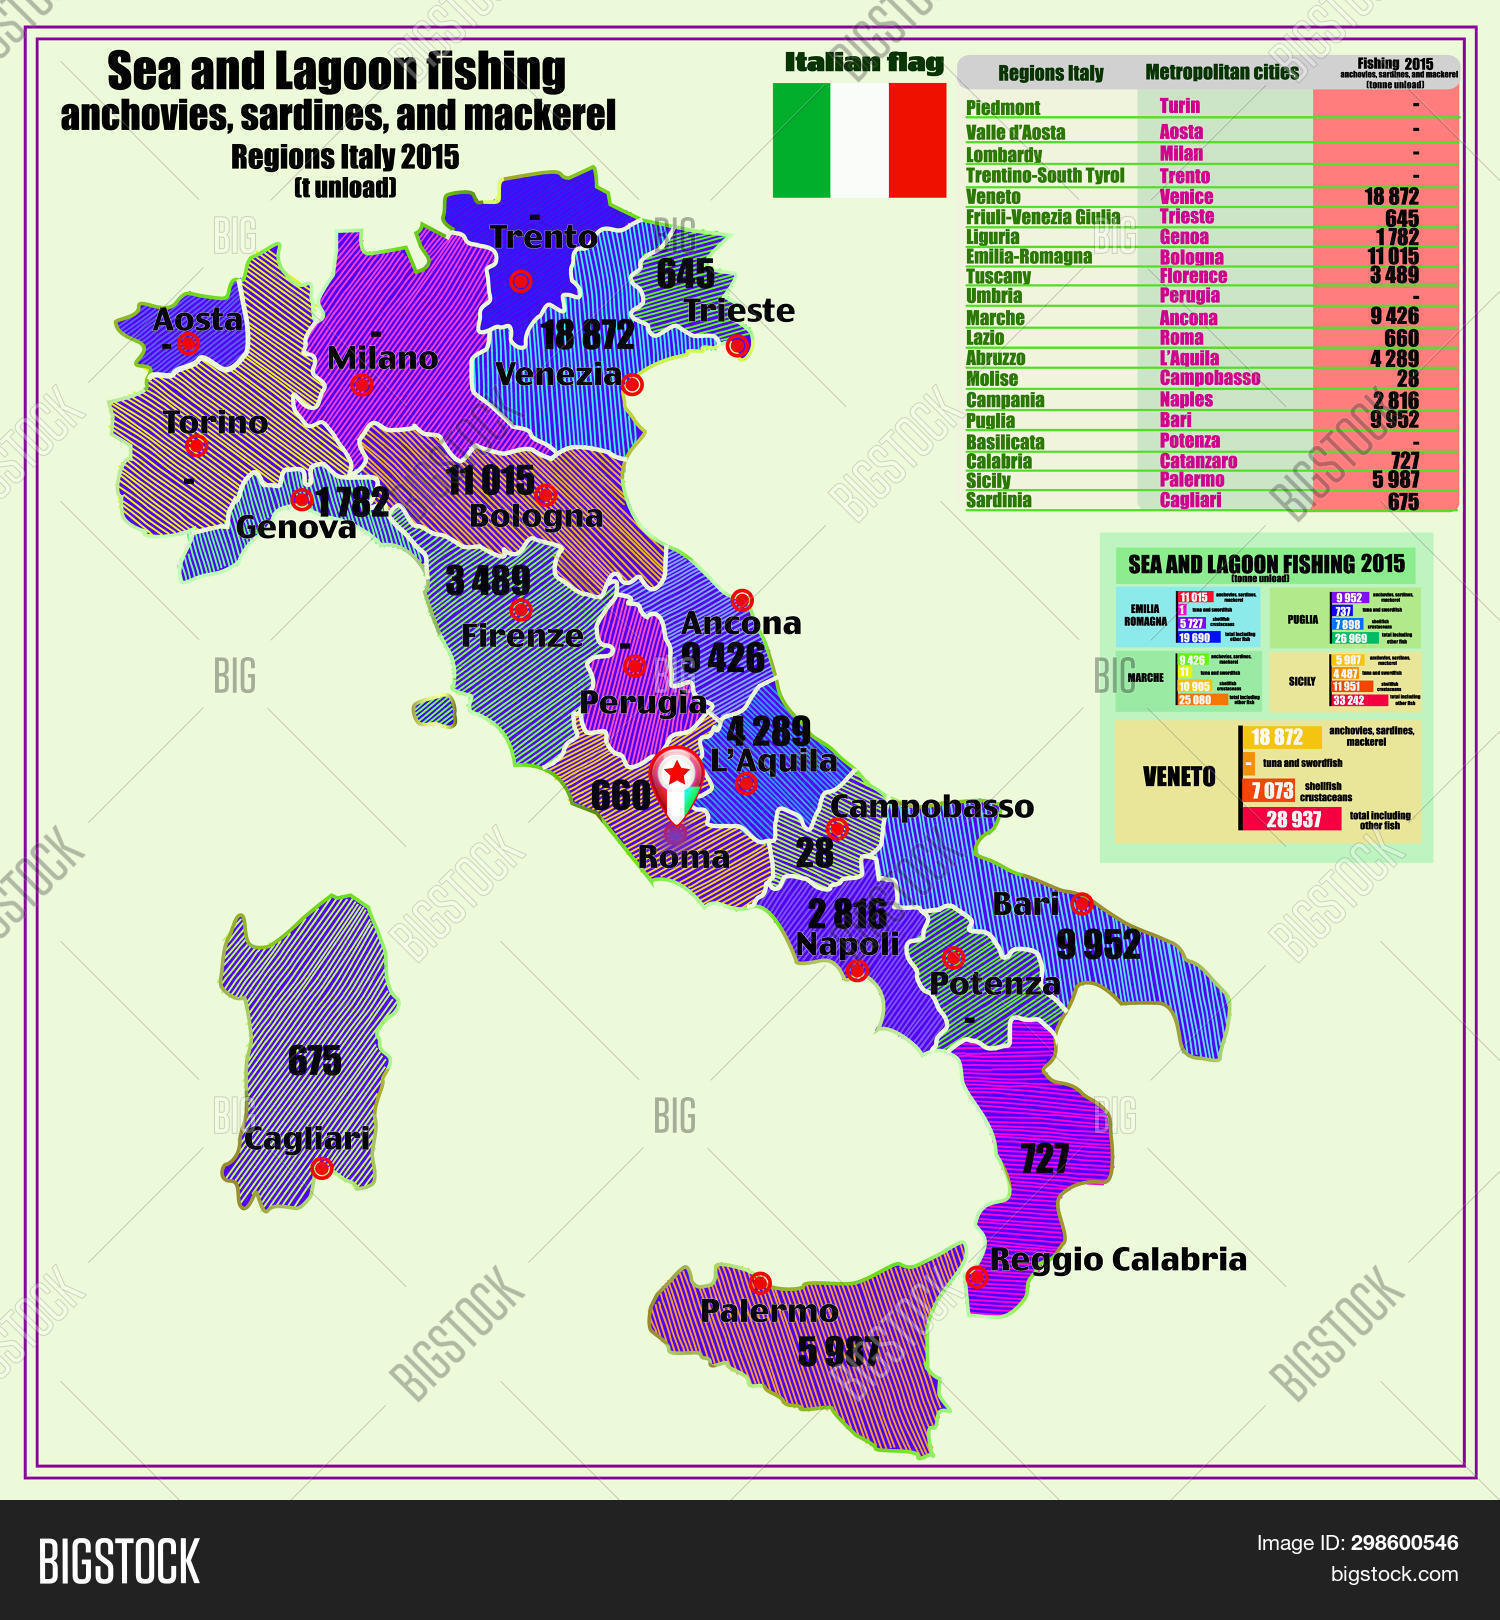 Regions Of Italy Map With Cities.Map Italy Infographic Image Photo Free Trial Bigstock